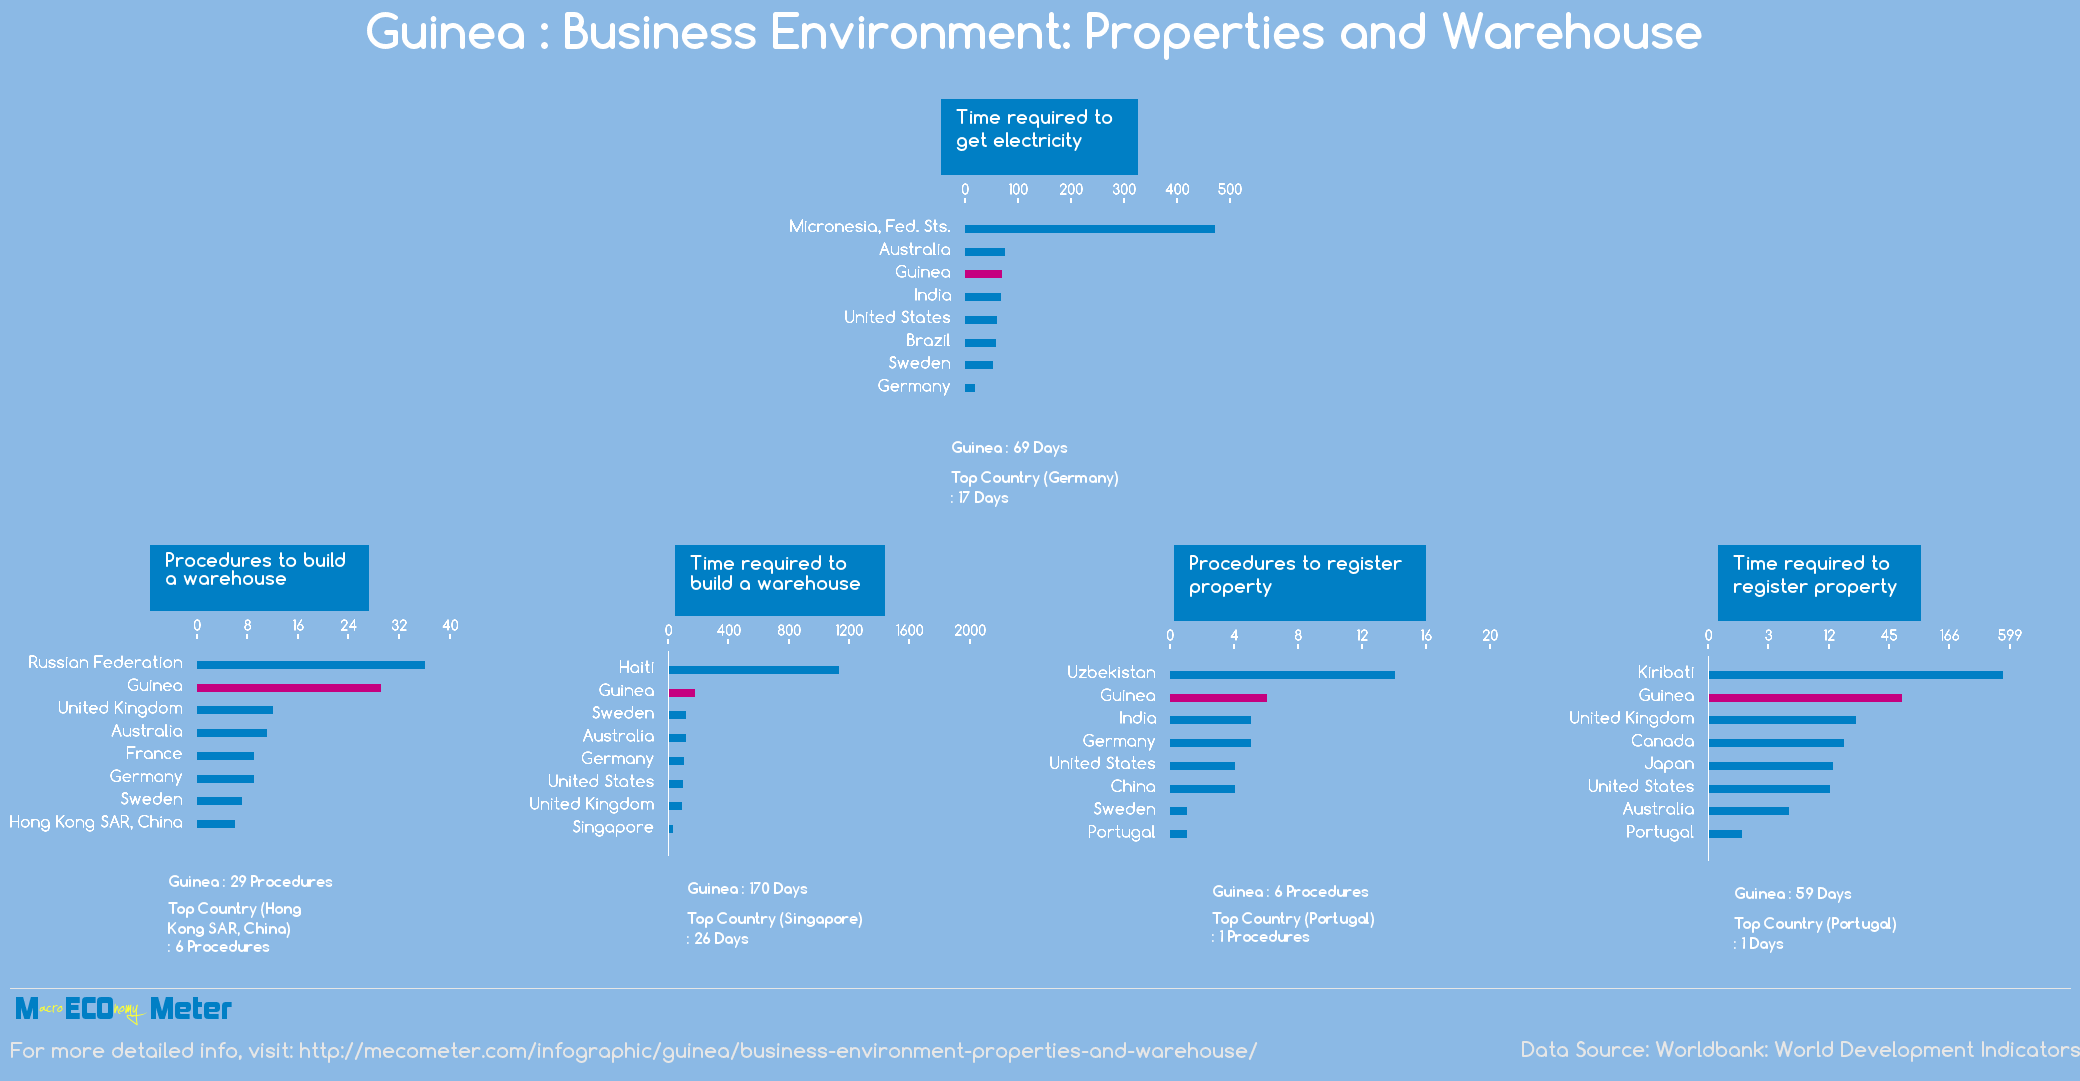 Guinea : Business Environment: Properties and Warehouse